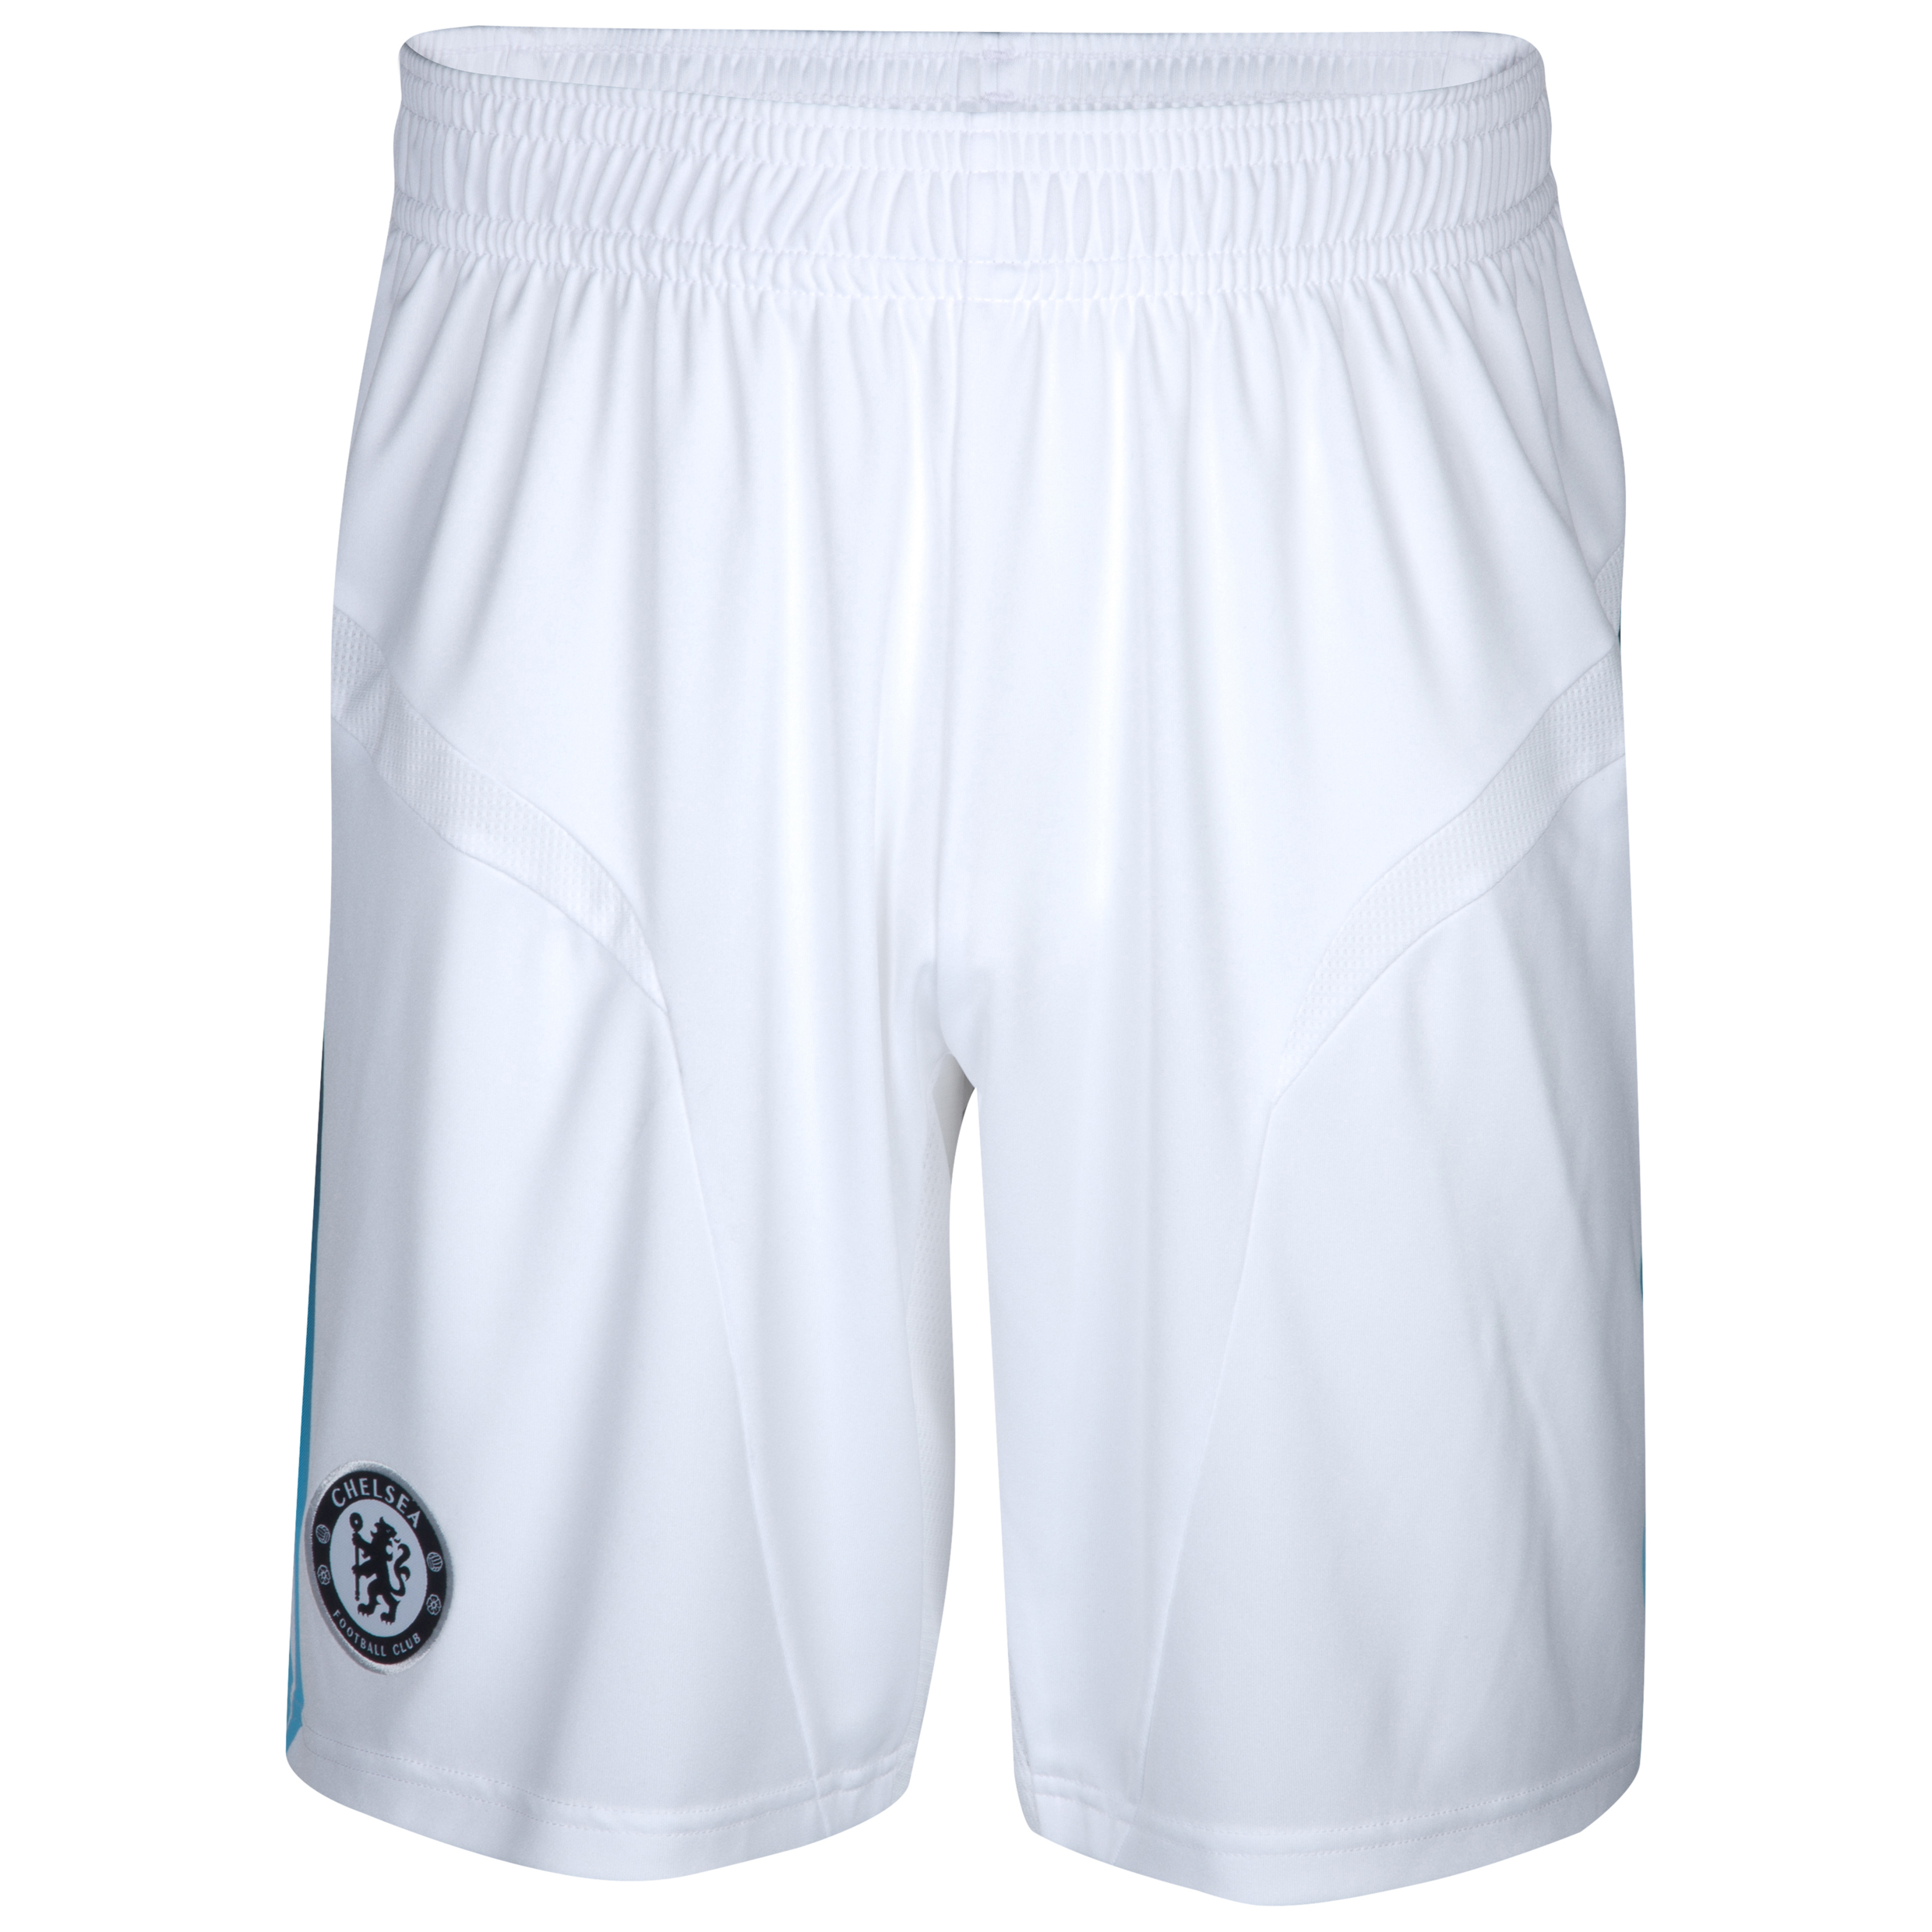 Chelsea Away Short 2012/13